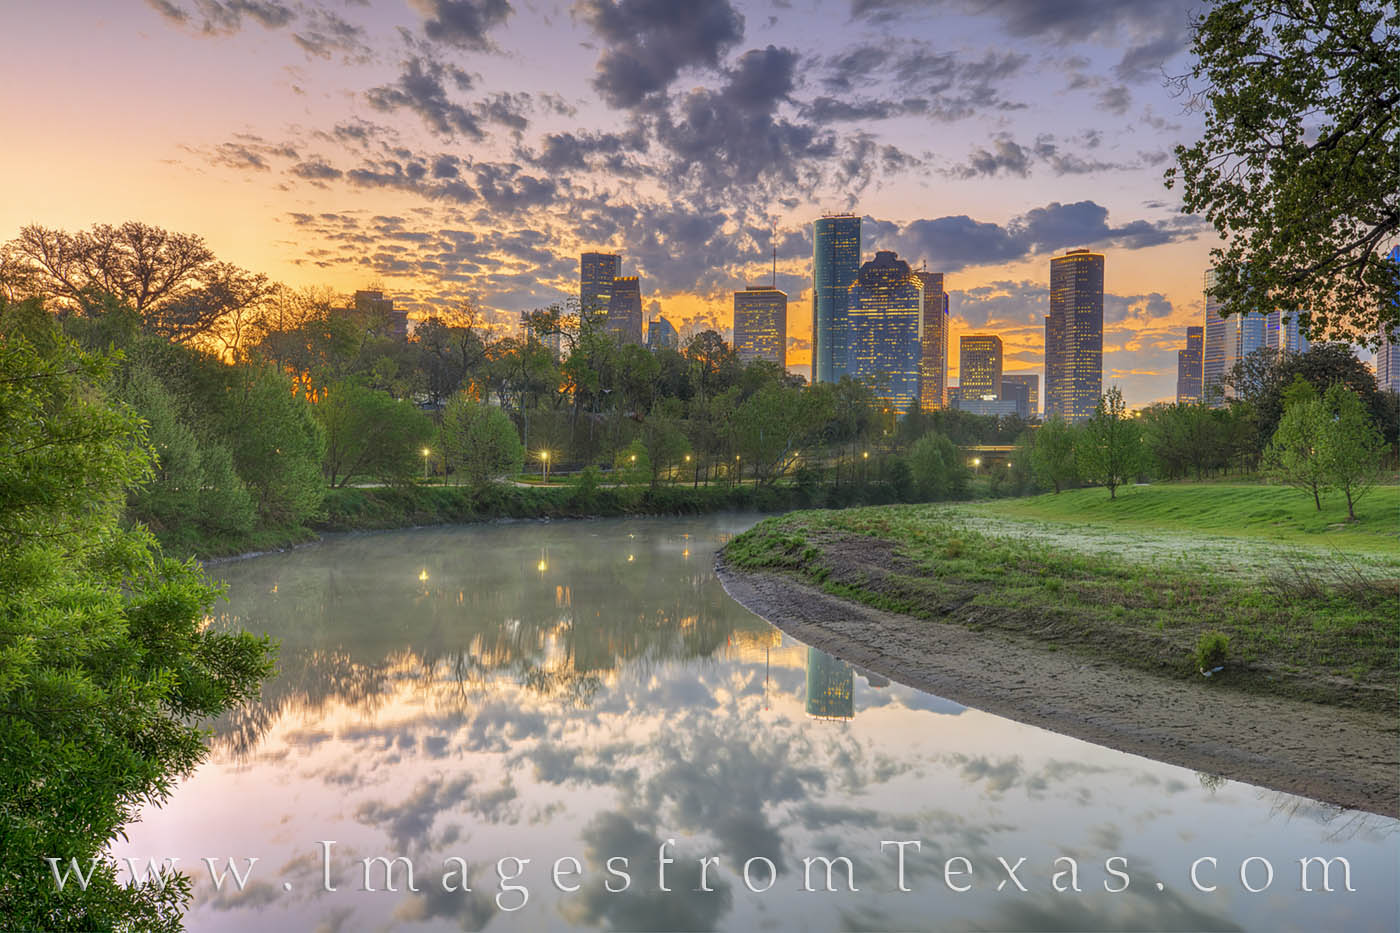 An orange glow on the horizon signal the beginning of a new day near downtown Houston, Texas. The reflection of the skyline along...